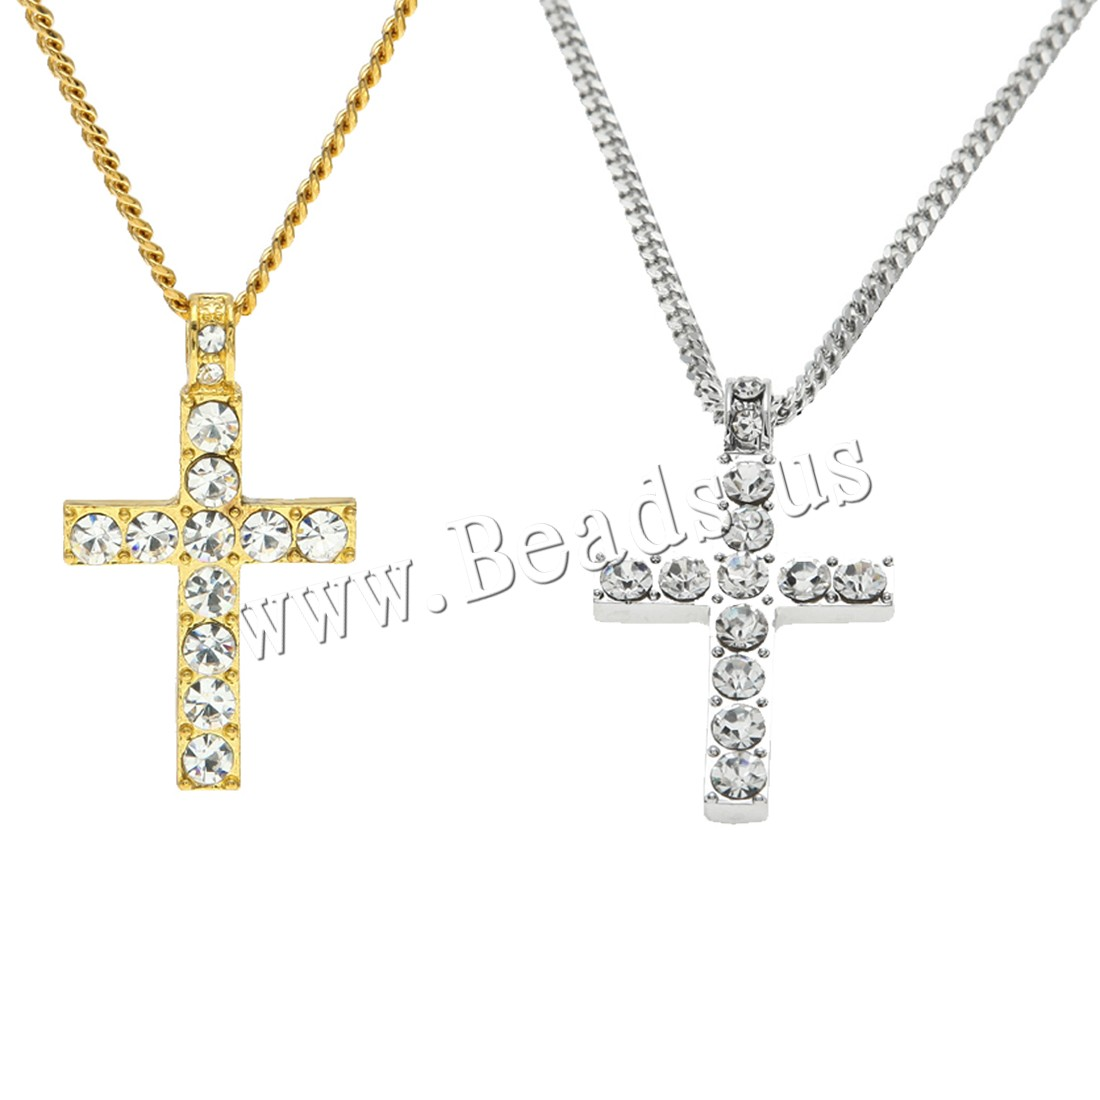 Buy Zinc Alloy Sweater Chain Necklace Cross plated Unisex & curb chain & micro pave cubic zirconia colors choice nickel lead & cadmium free 42x25mm 3mm Sold Per Approx 23.6 Inch Strand